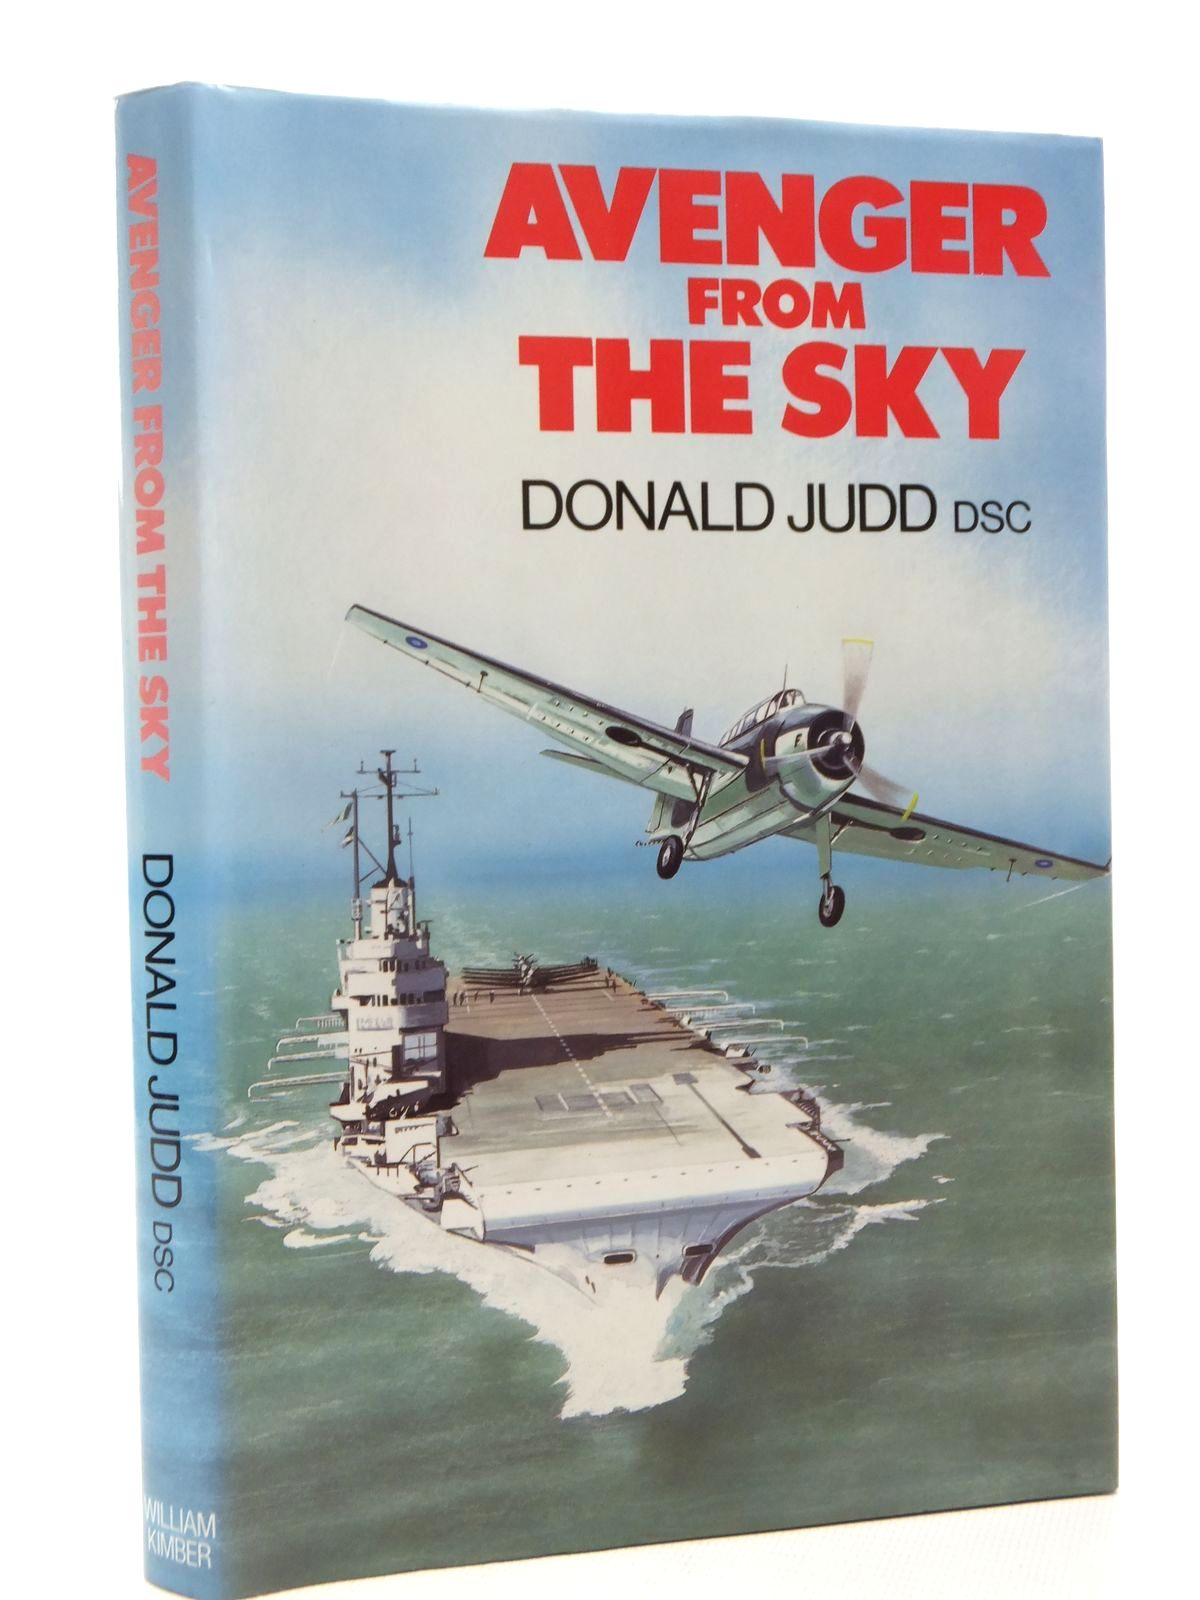 Photo of AVENGER FROM THE SKY written by Judd, Donald published by William Kimber (STOCK CODE: 1610085)  for sale by Stella & Rose's Books